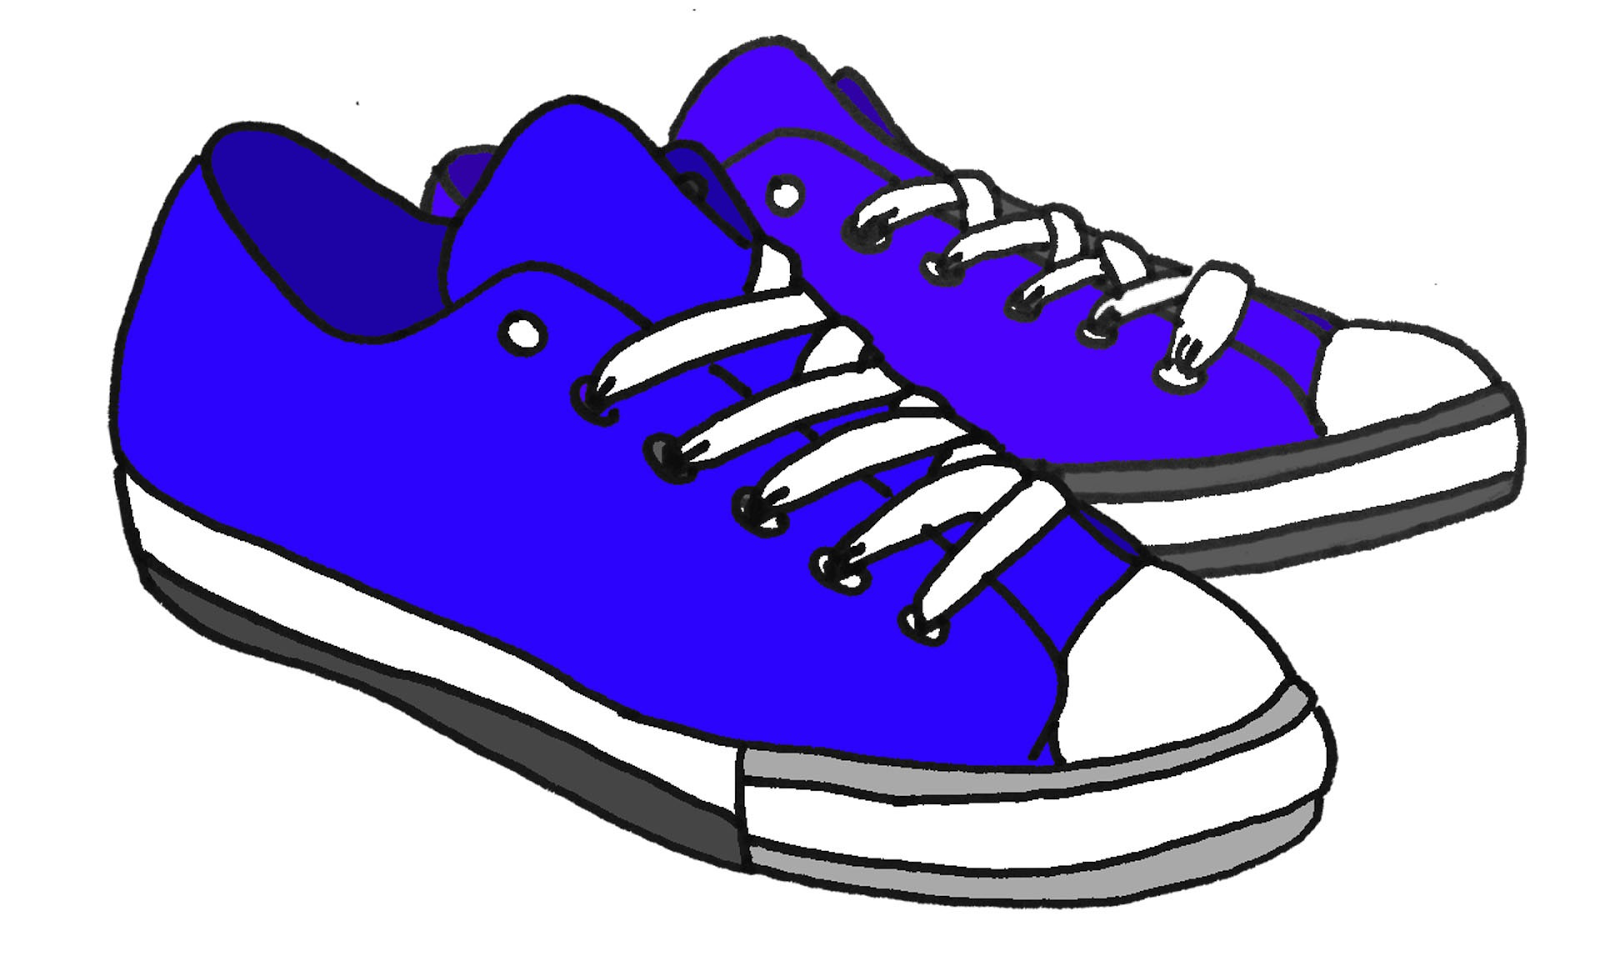 Free Shoe Cliparts, Download Free Clip Art, Free Clip Art on.